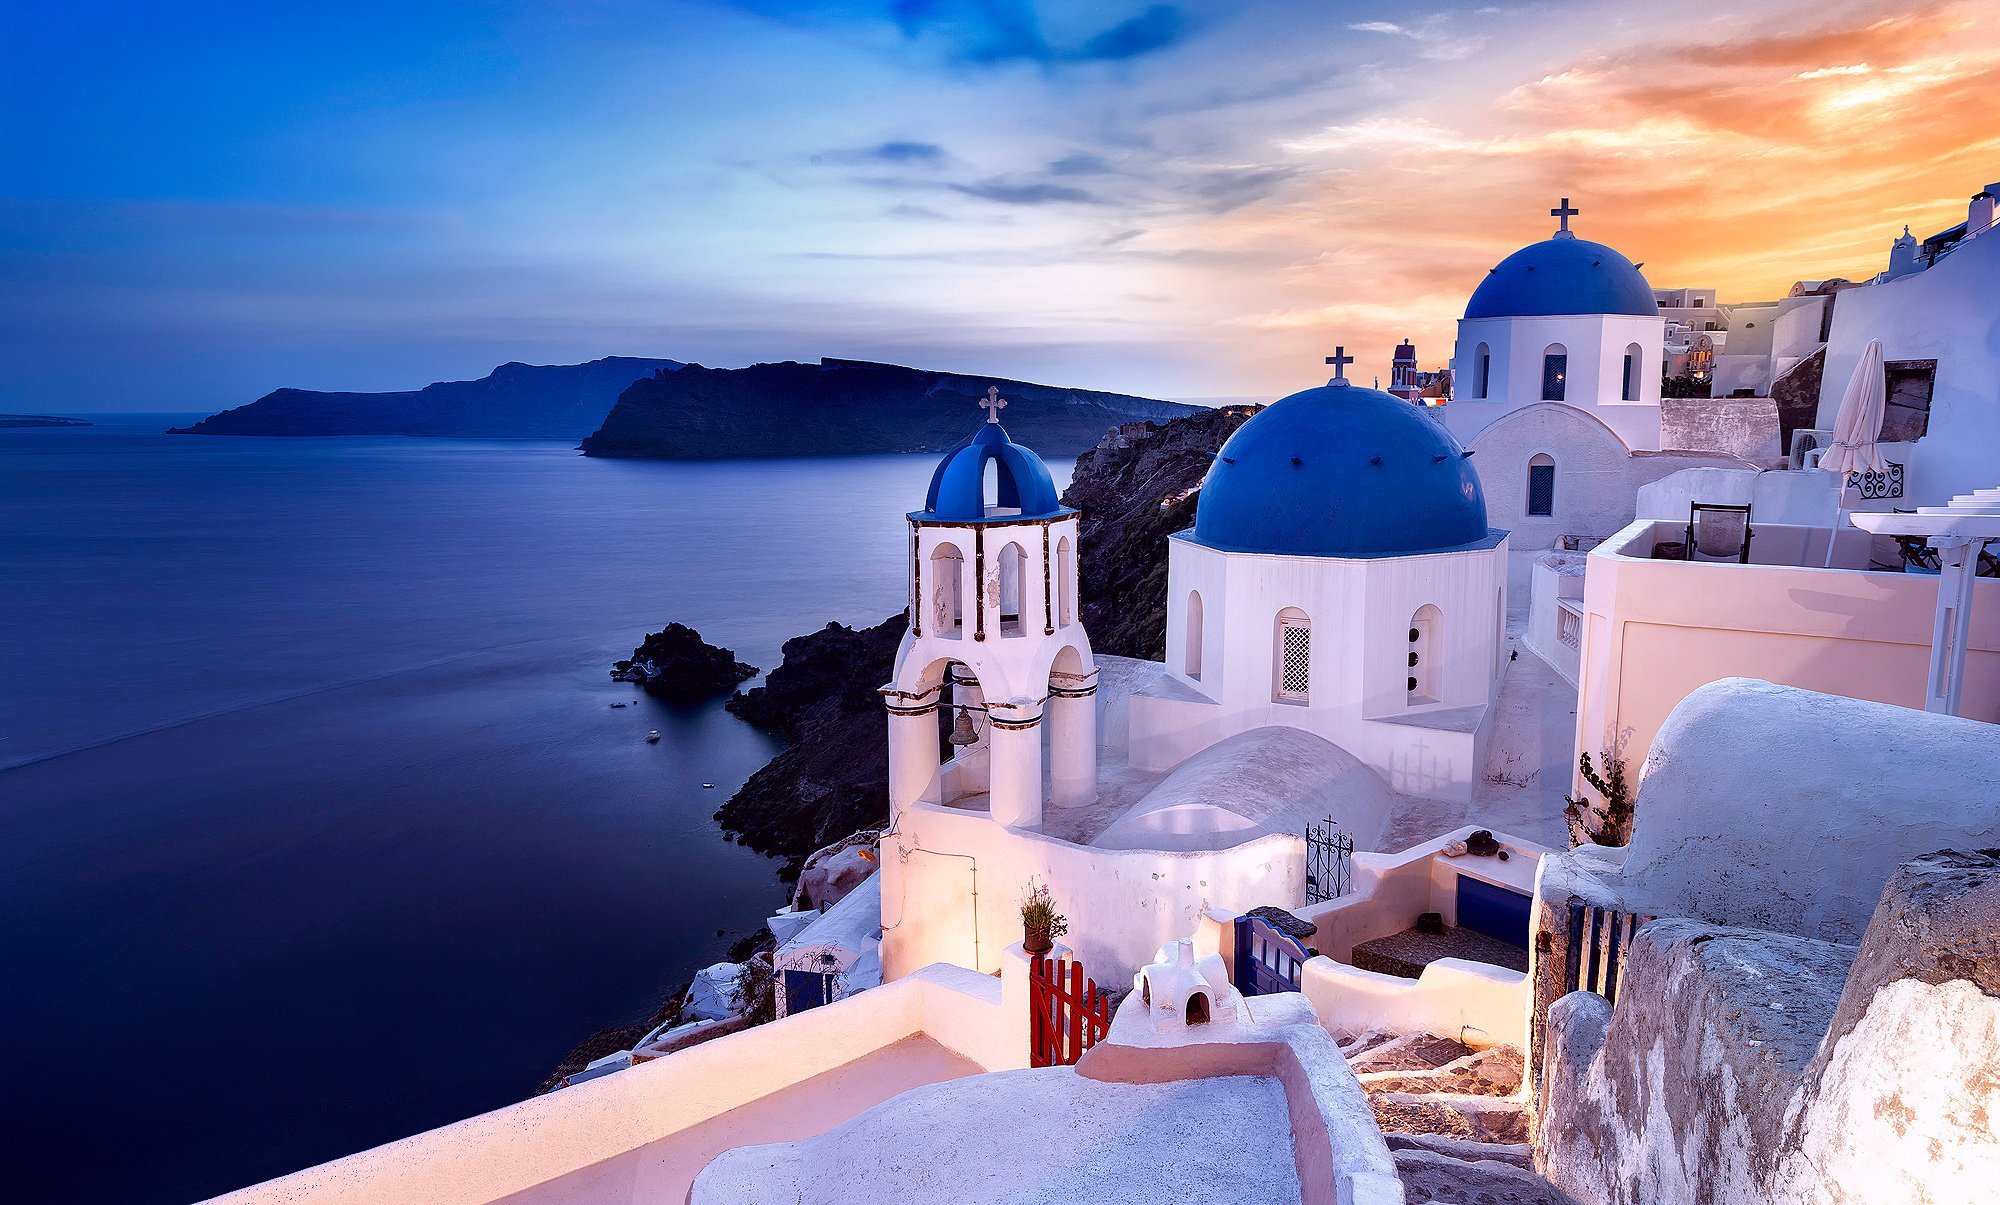 Santorini Wallpapers High Resolution 5KB3F7M   4USkY 2000x1205